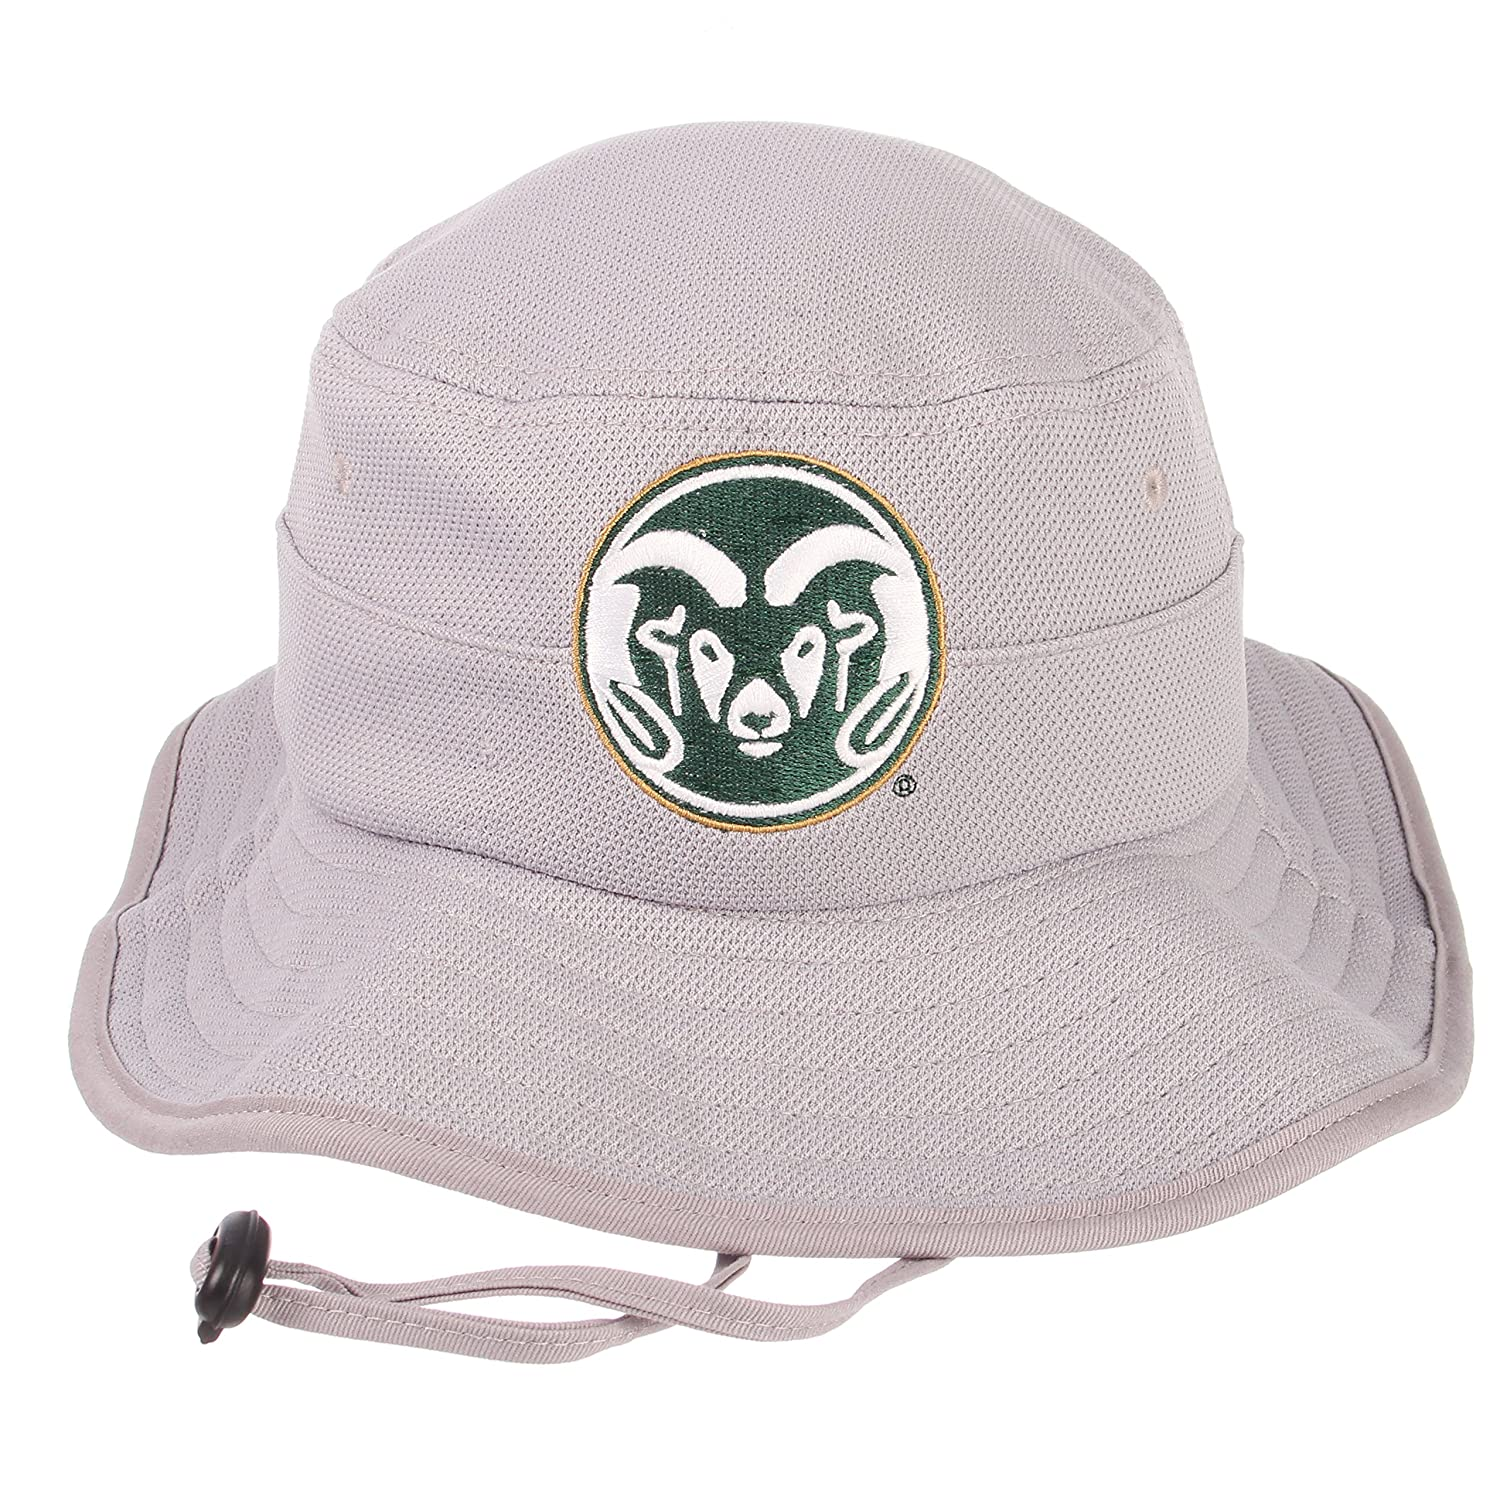 Amazon.com   Colorado State Rams Official NCAA Coach Small Bucket Hat Cap  by Zephyr 602096   Sports   Outdoors 6e9f435c62f